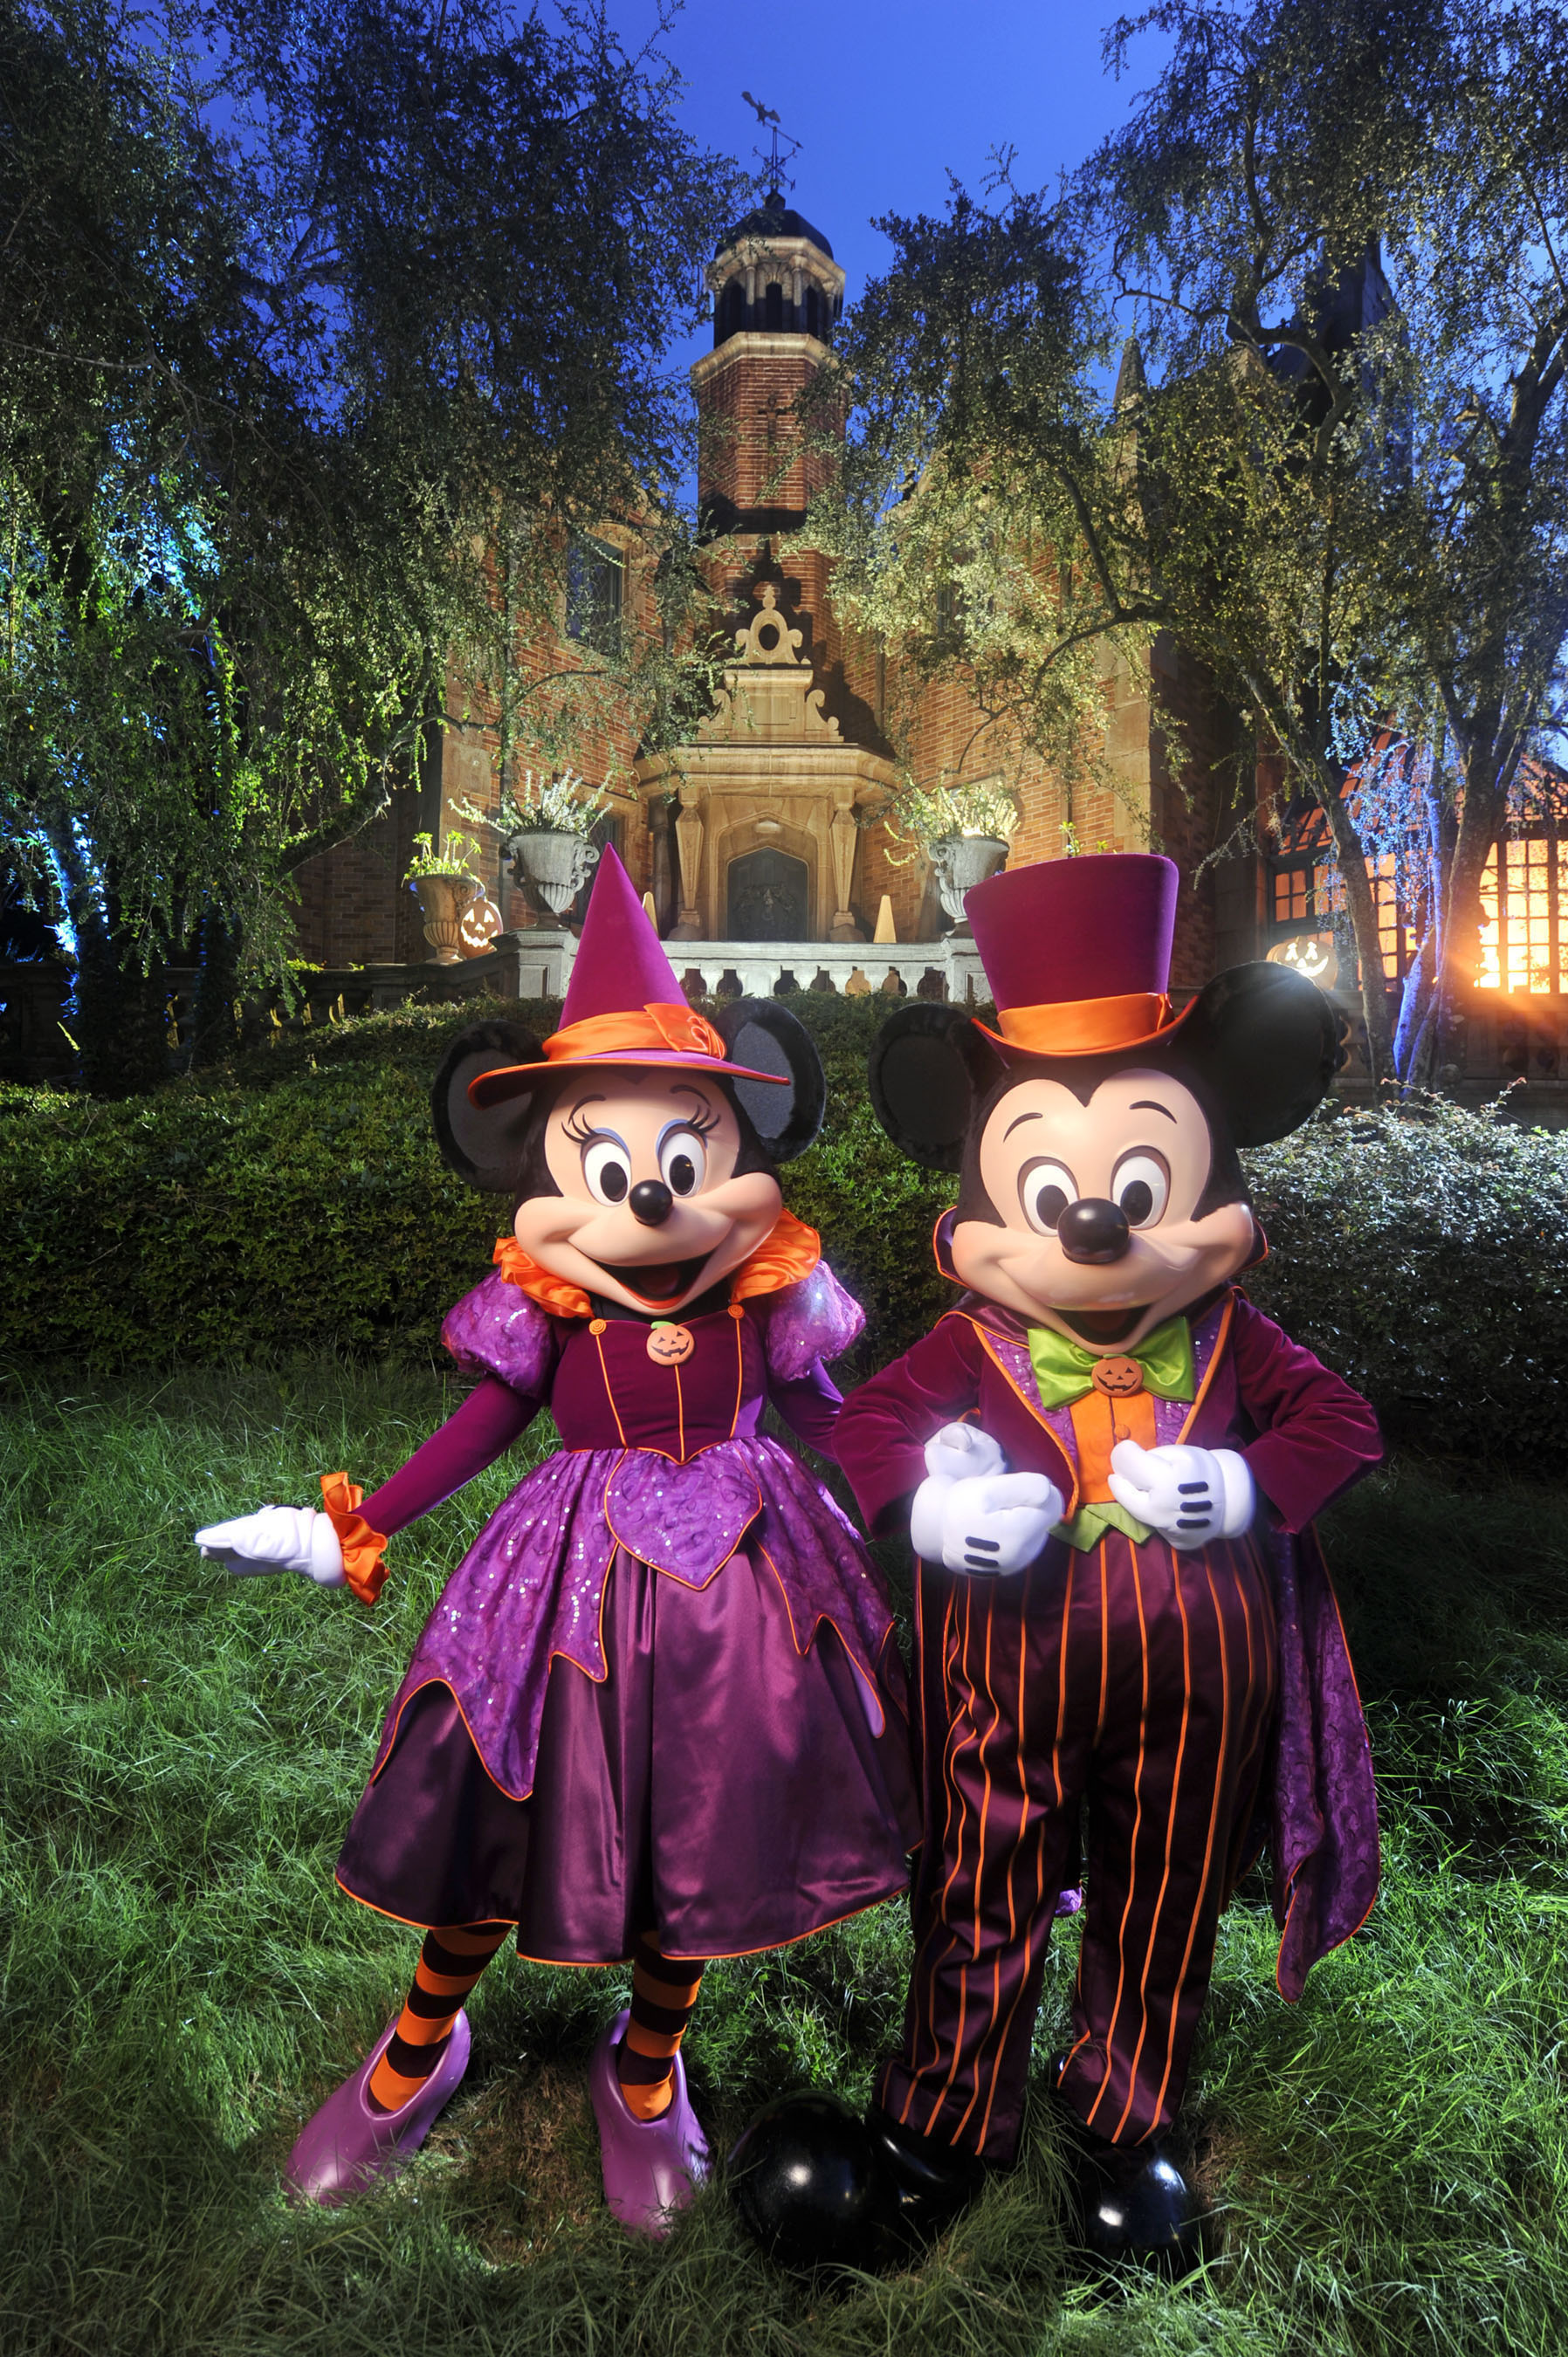 mickey and minnie decked out for mickeys not so scary halloween party